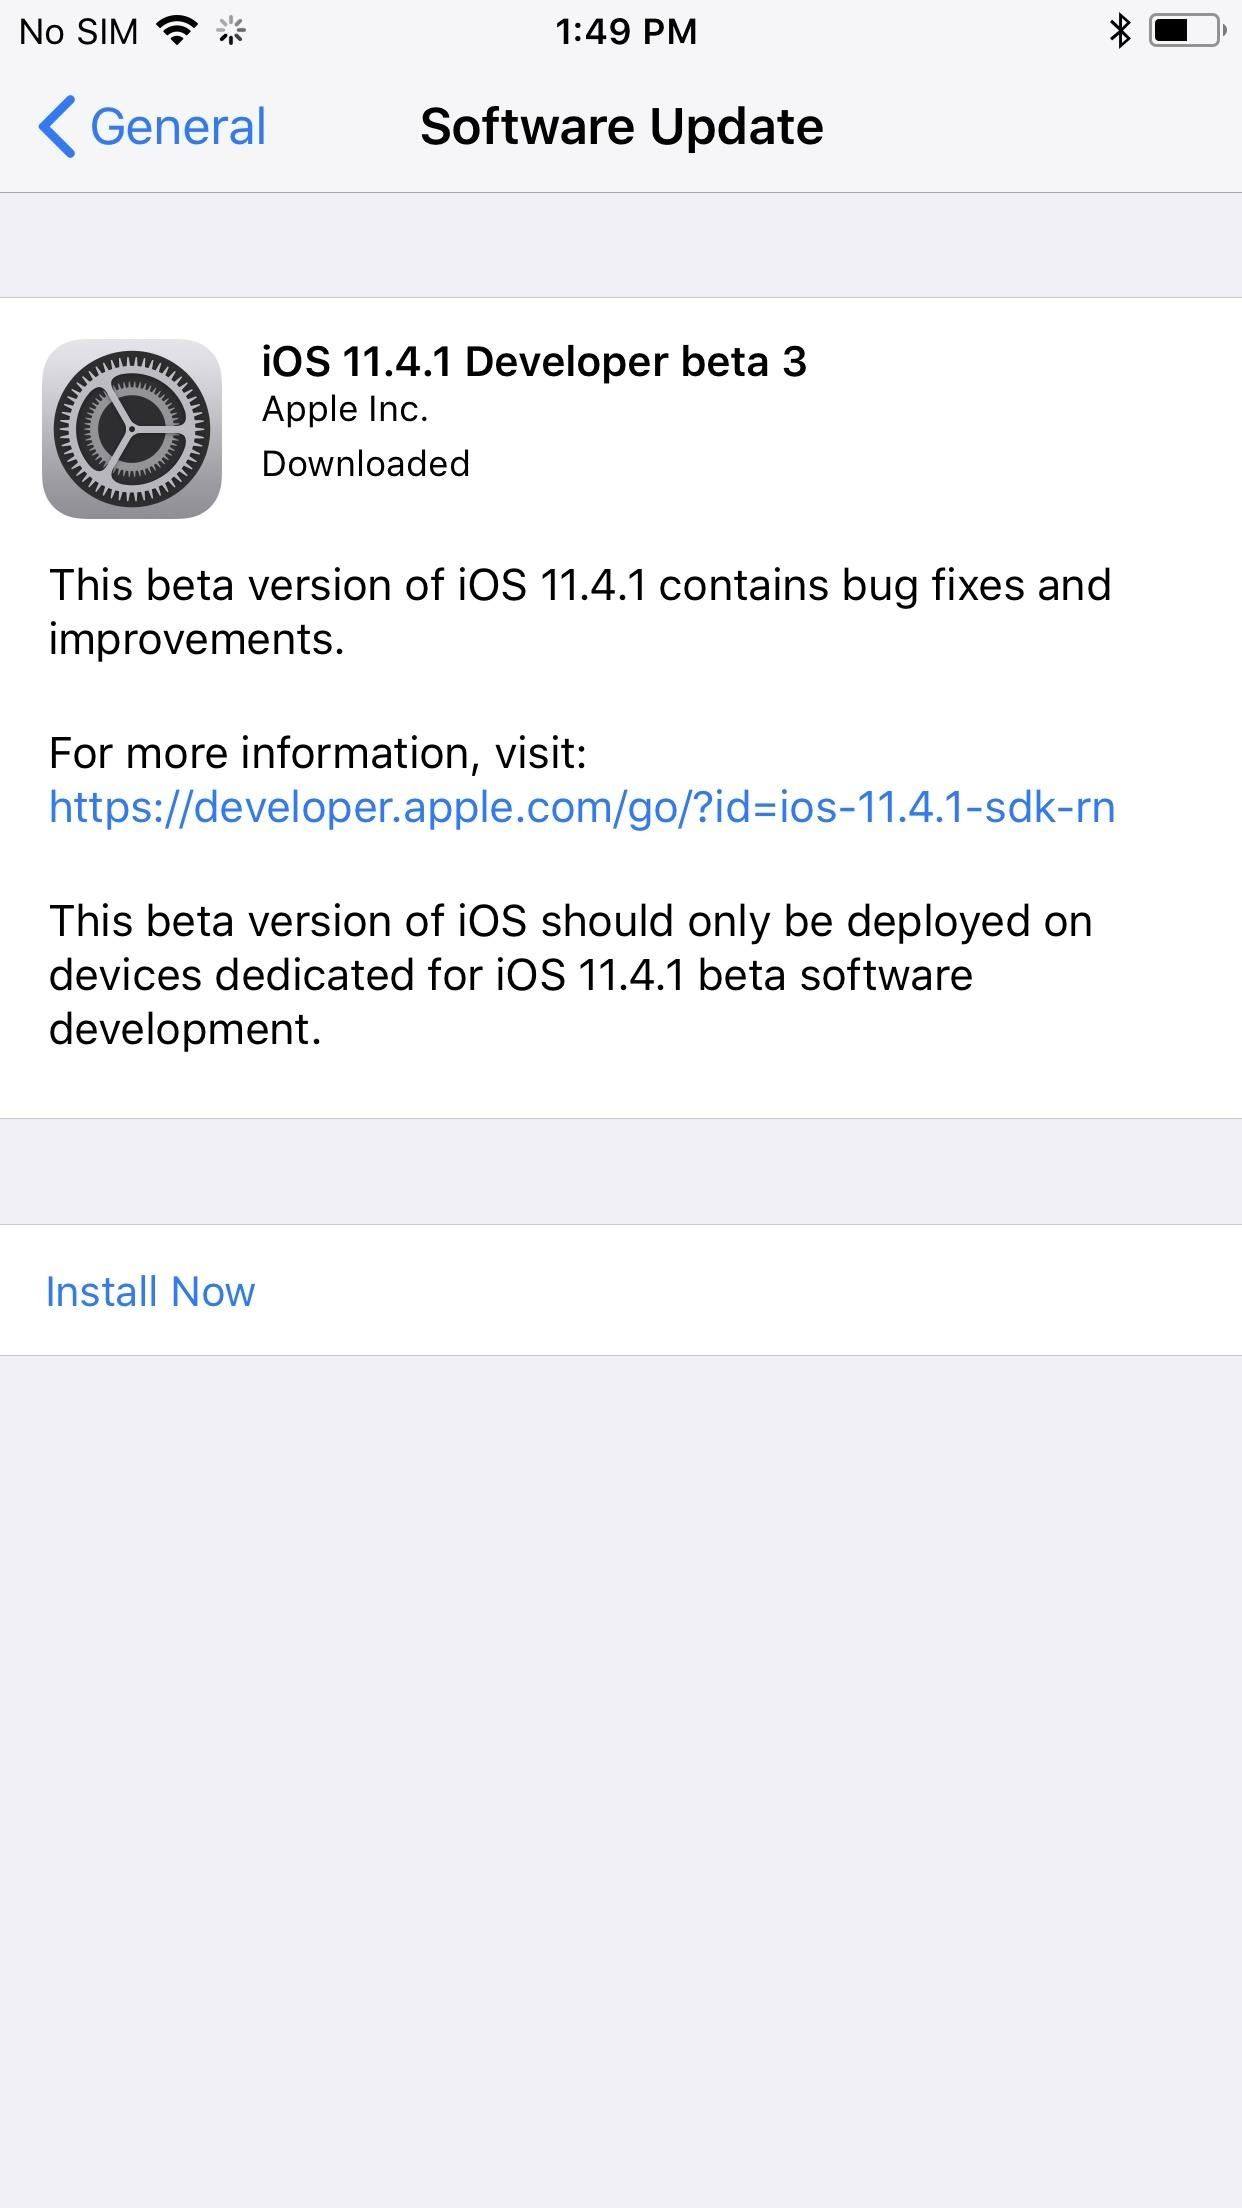 iOS 11.4.1 Beta 3 Released for iPhones, Still Focusing on Unknown Improvements